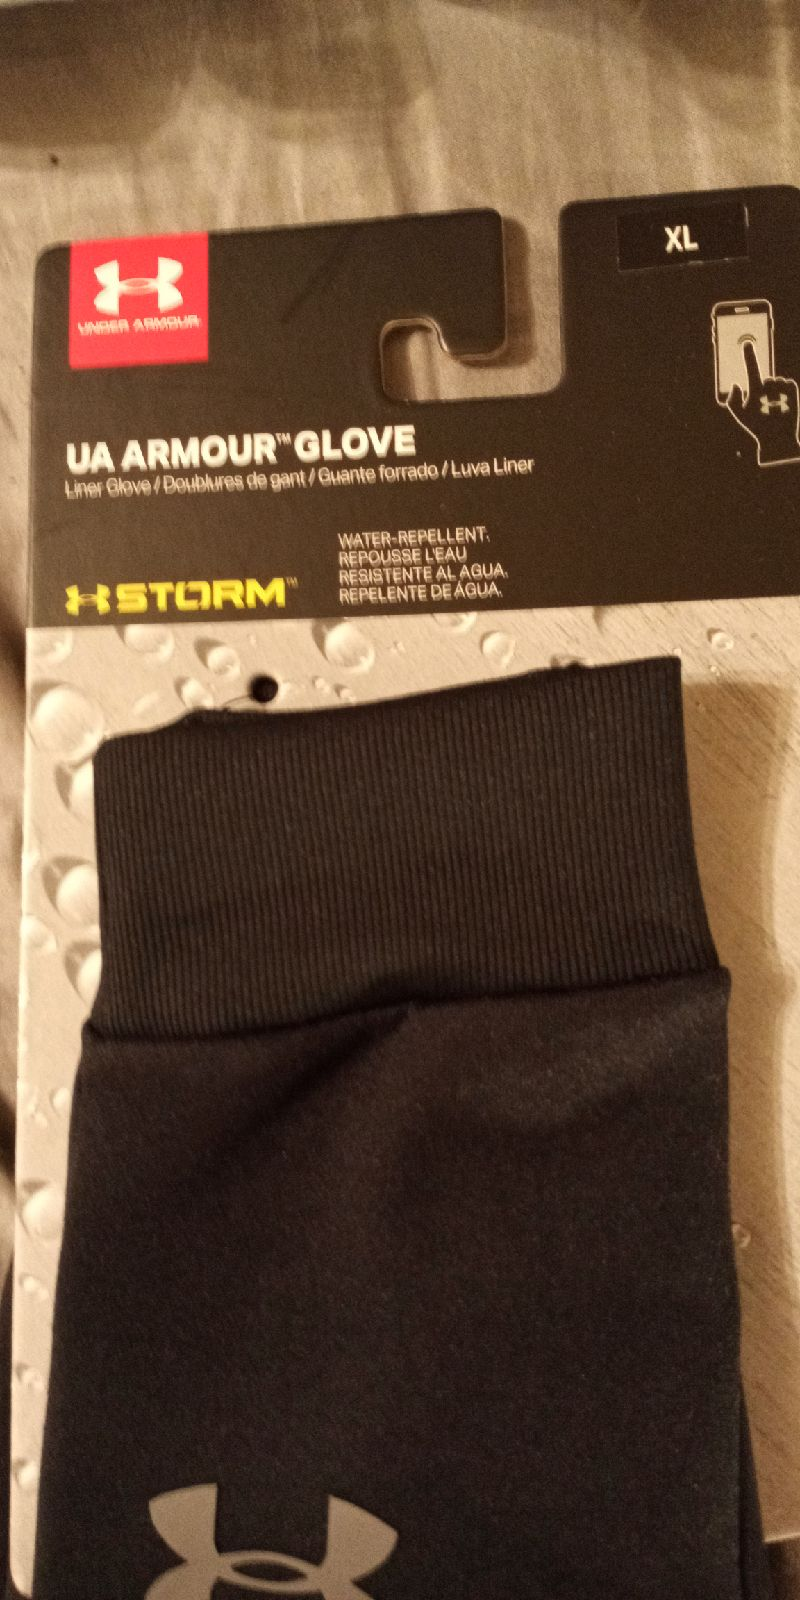 Under armor h storm water repellent can